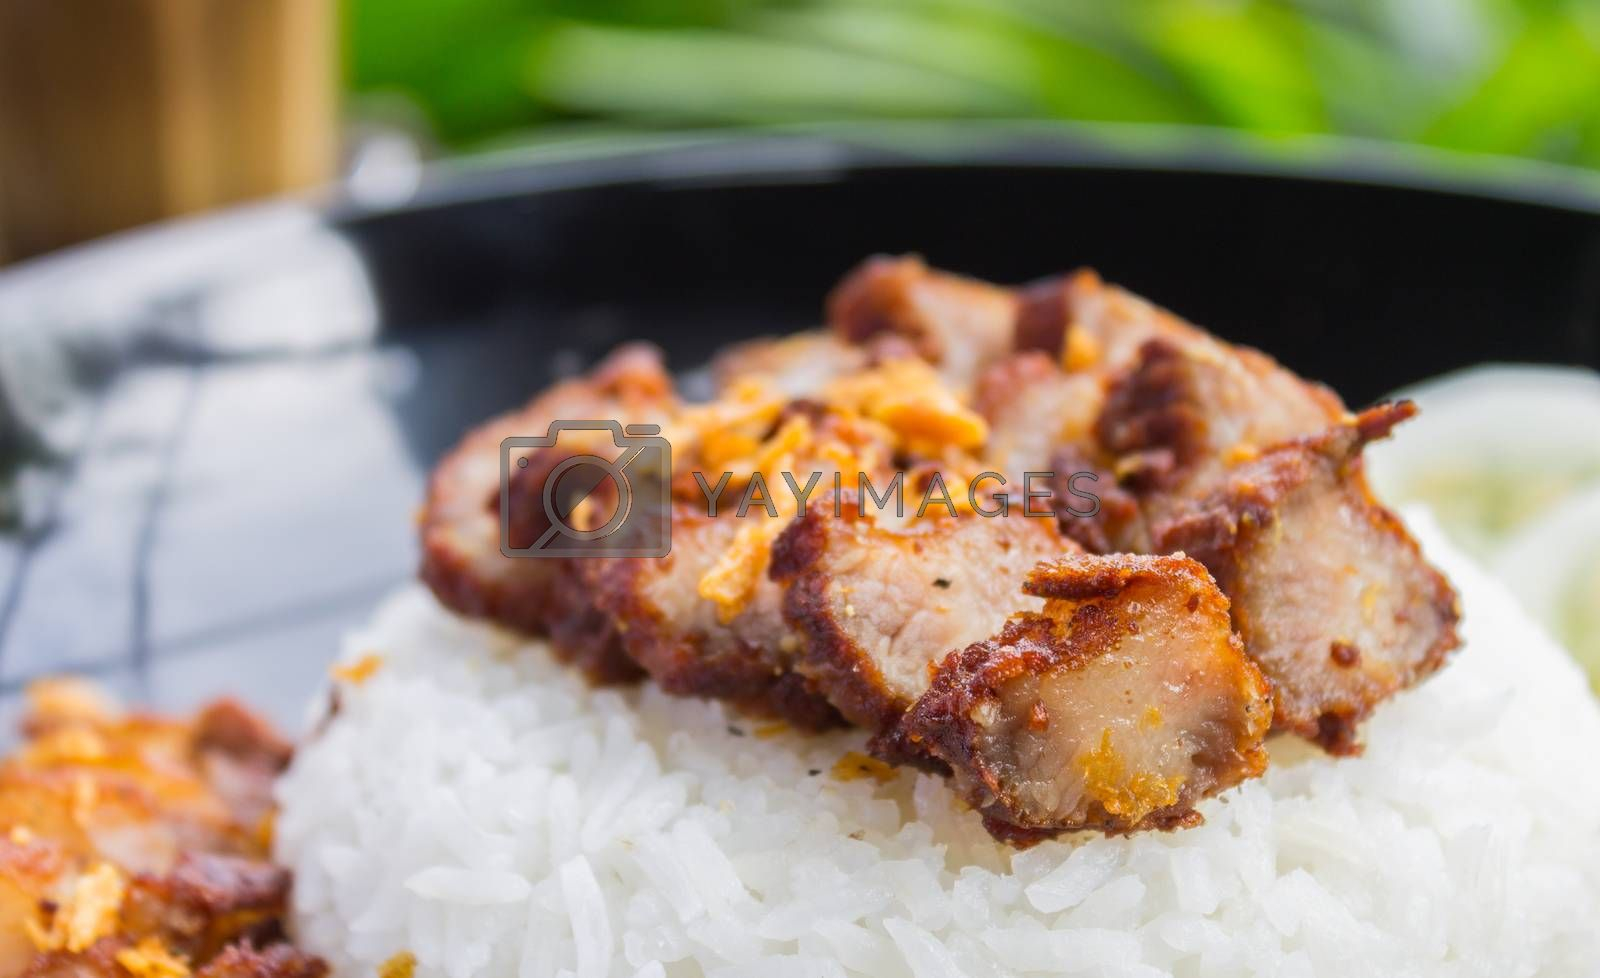 Thai Food Fried Pork with Garlic and Cucumber and Latte Coffee on Green Tree Background. Thai Food Fried Pork Steak with Garlic and Latte Coffee in food and drink category